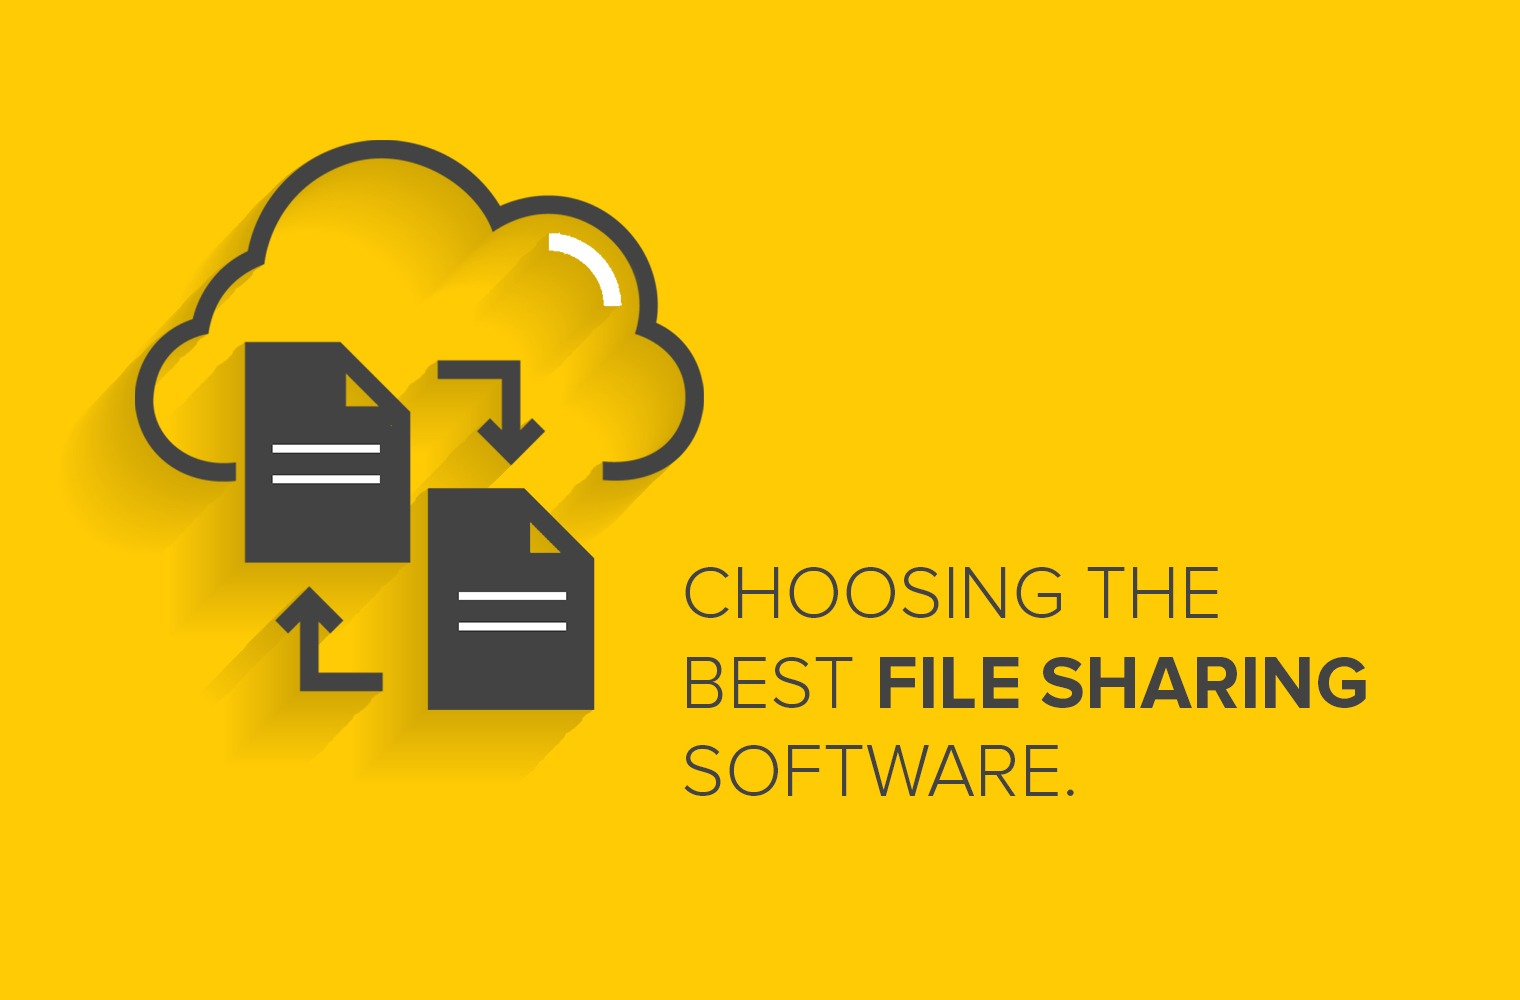 Choosing the Best File Sharing Software